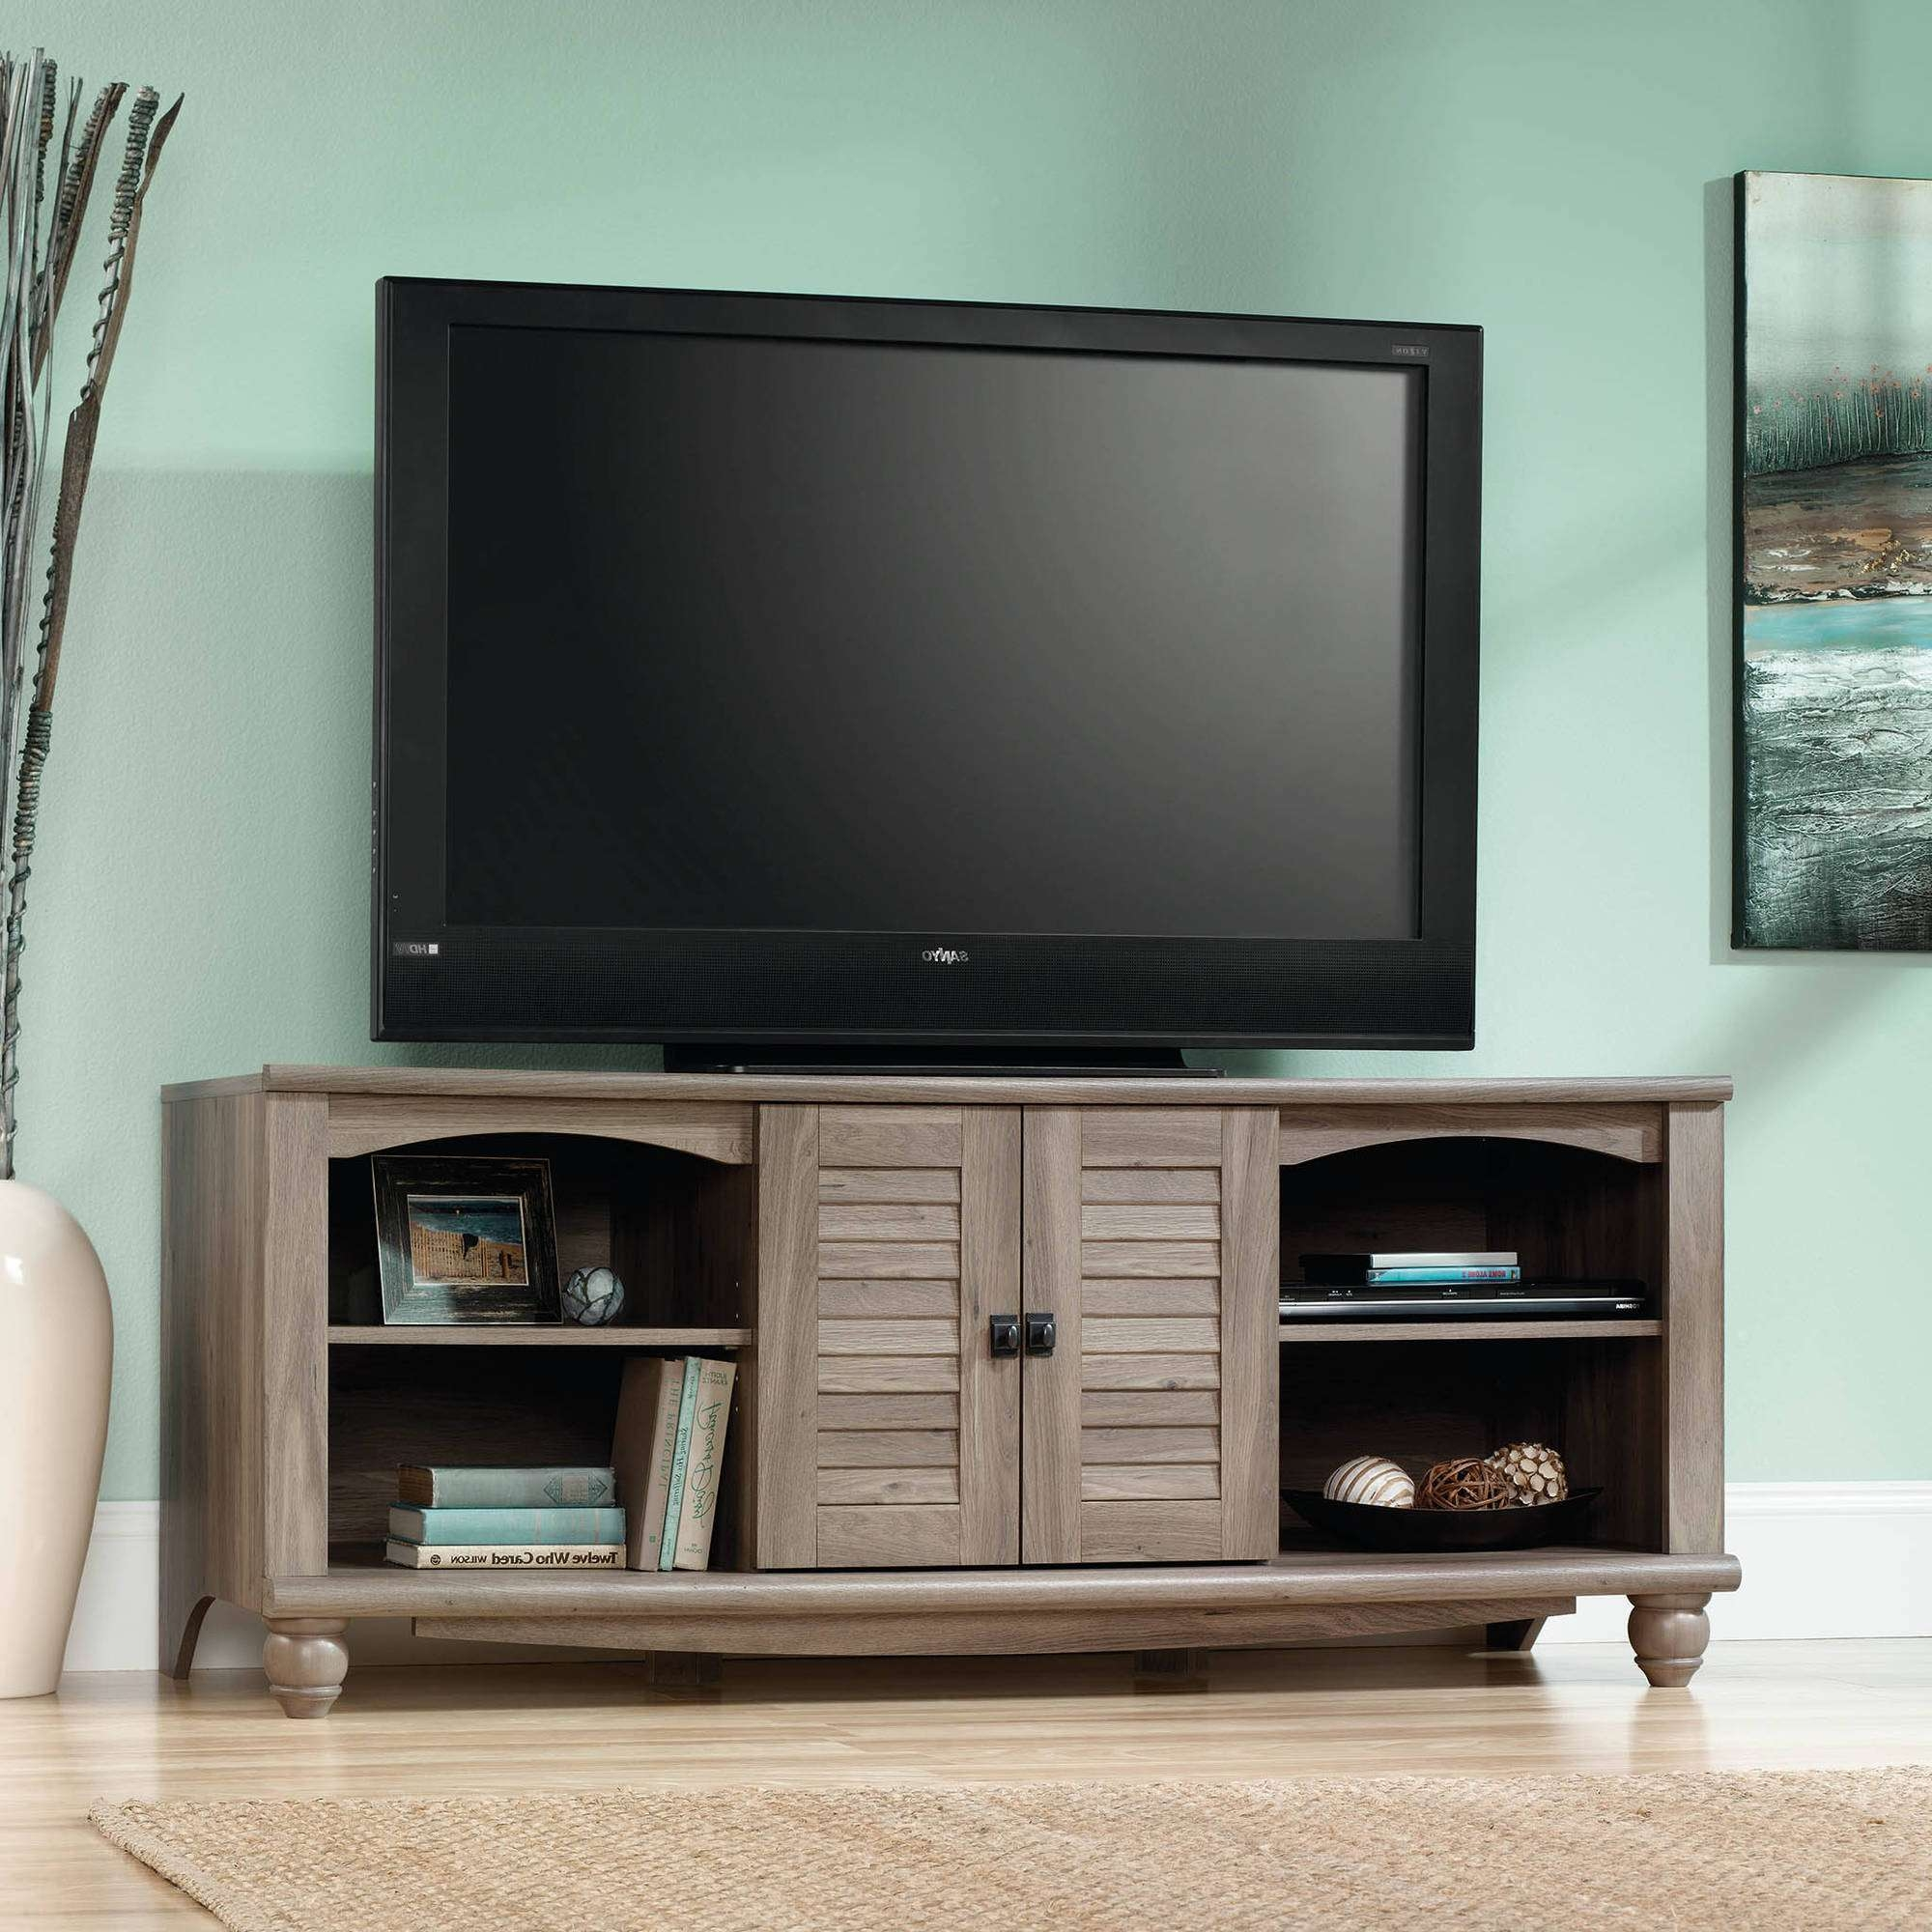 Tv : Small Tv Stand Beautiful Lane Tv Stands Whitney S Traditional Inside Lane Tv Stands (View 11 of 15)